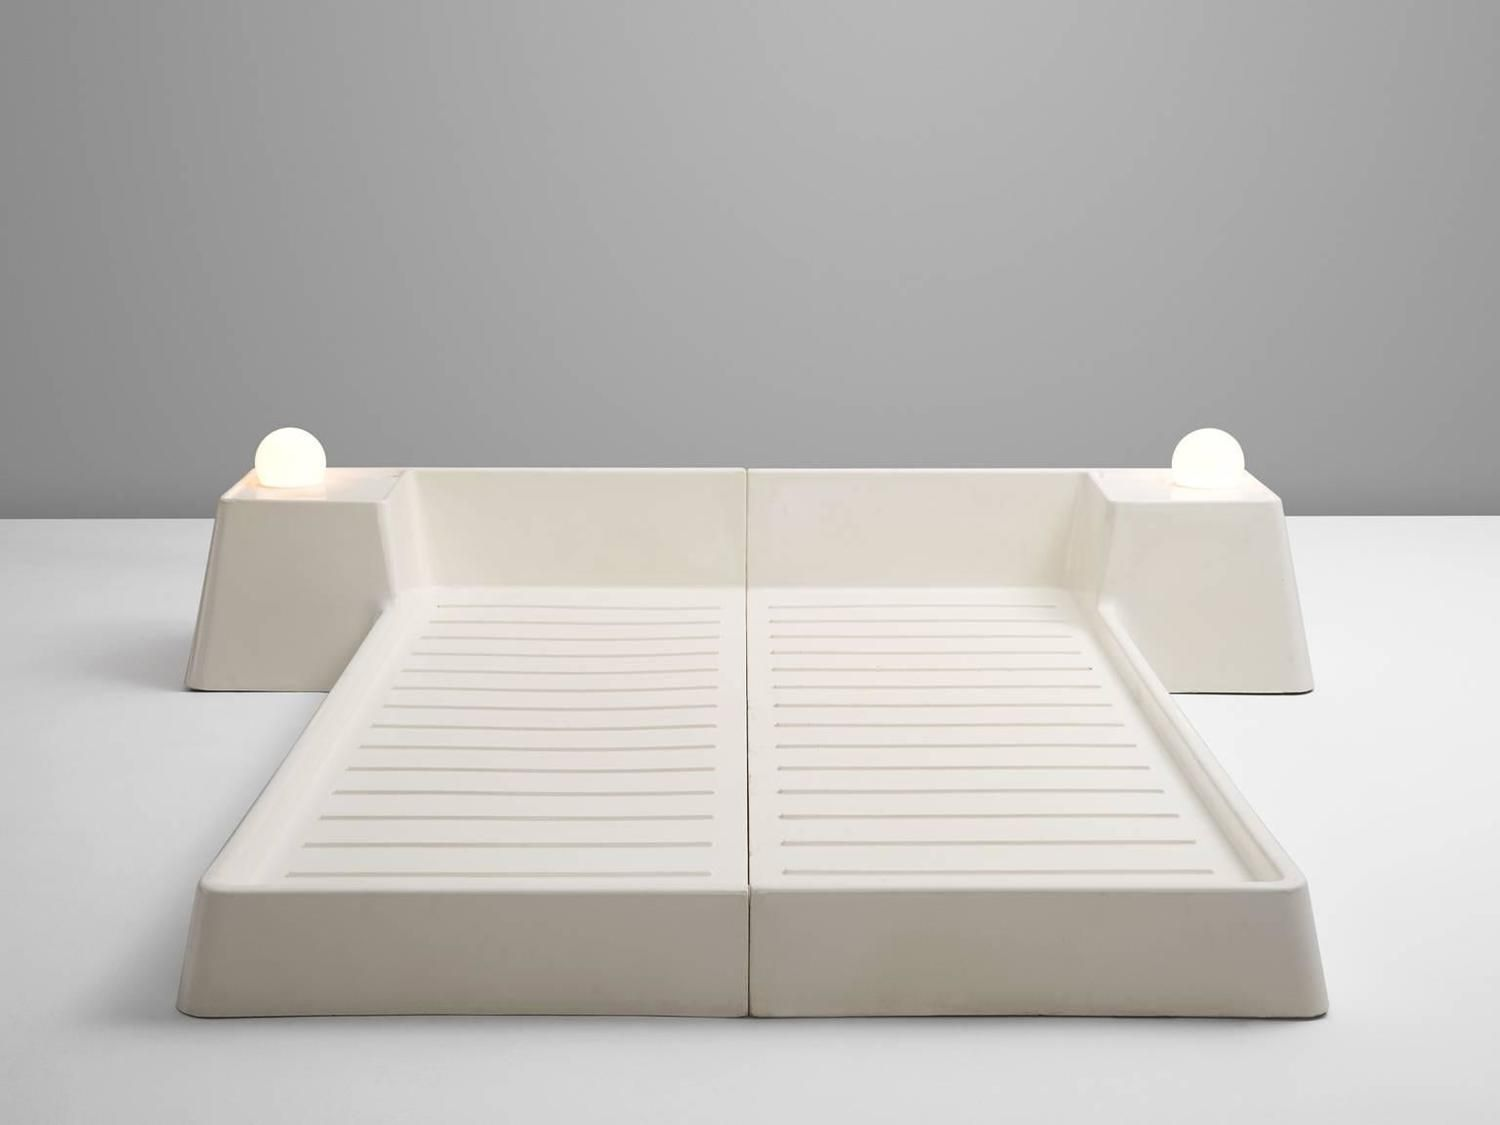 Futuristic Bed Frame by Marc Held for Prisunic | objects | Pinterest ...